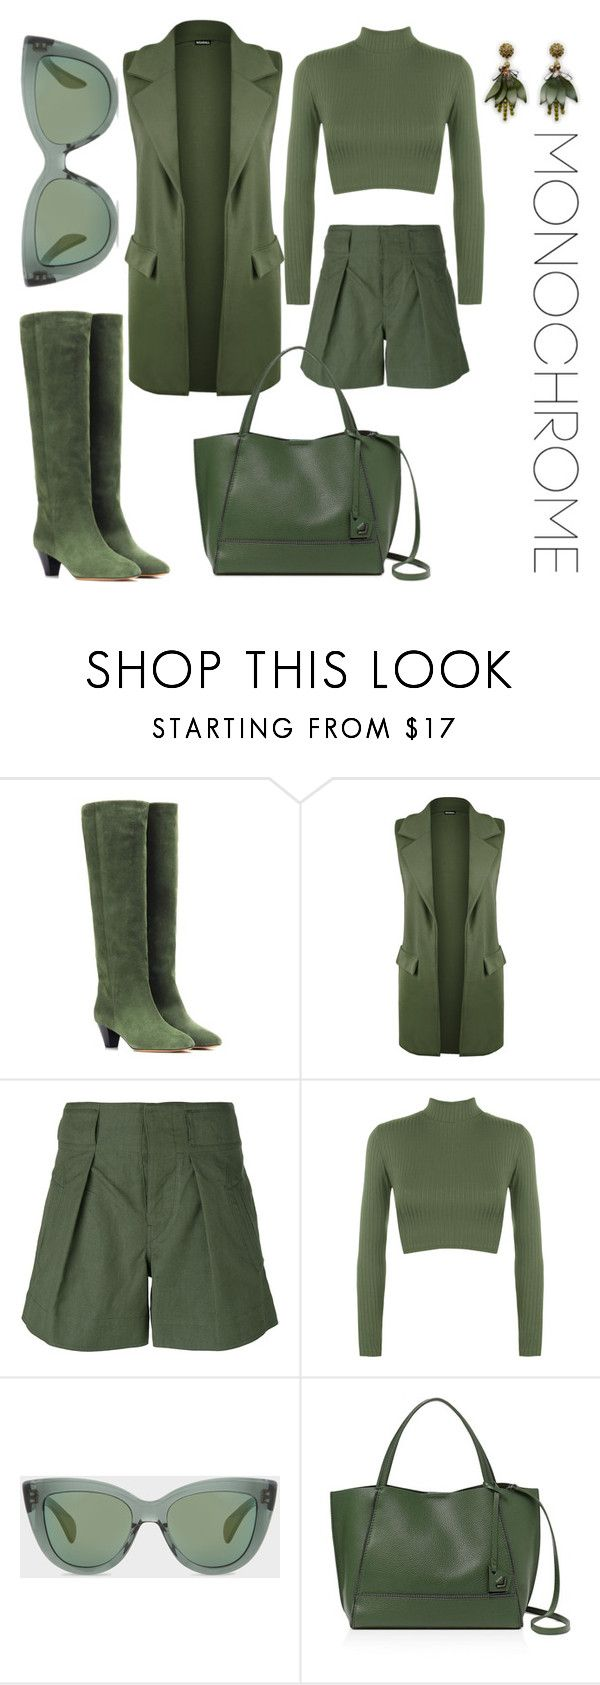 """""""kale Panthone colour 2017"""" by yulia-ustimenkova ❤ liked on Polyvore featuring Isabel Marant, WearAll, Étoile Isabel Marant, Paul Smith, Botkier and Ann Taylor"""